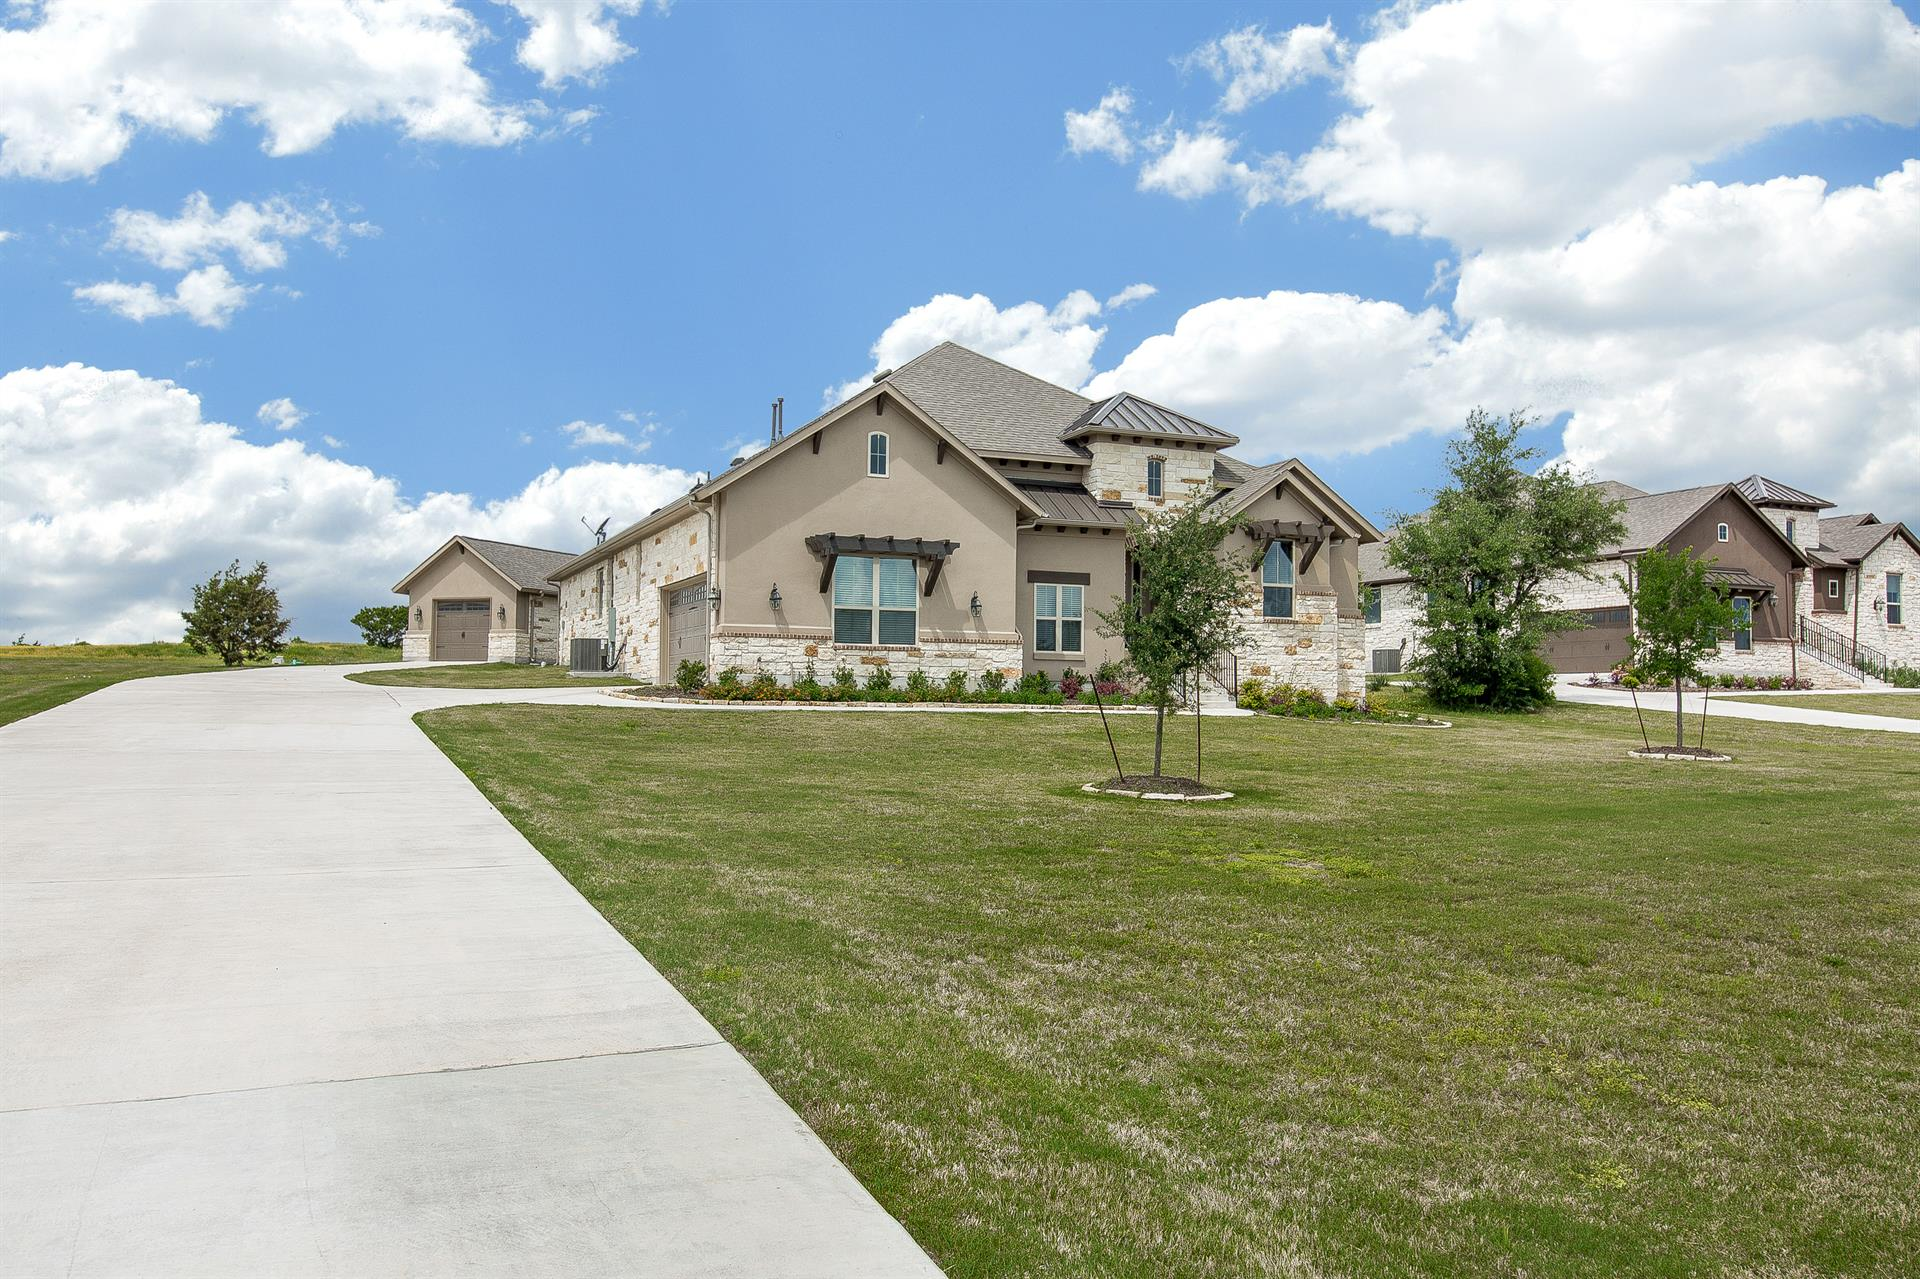 Residential for Sale at 210 Bluff Woods Drive 210 Bluff Woods Drive Driftwood, Texas 78619 United States